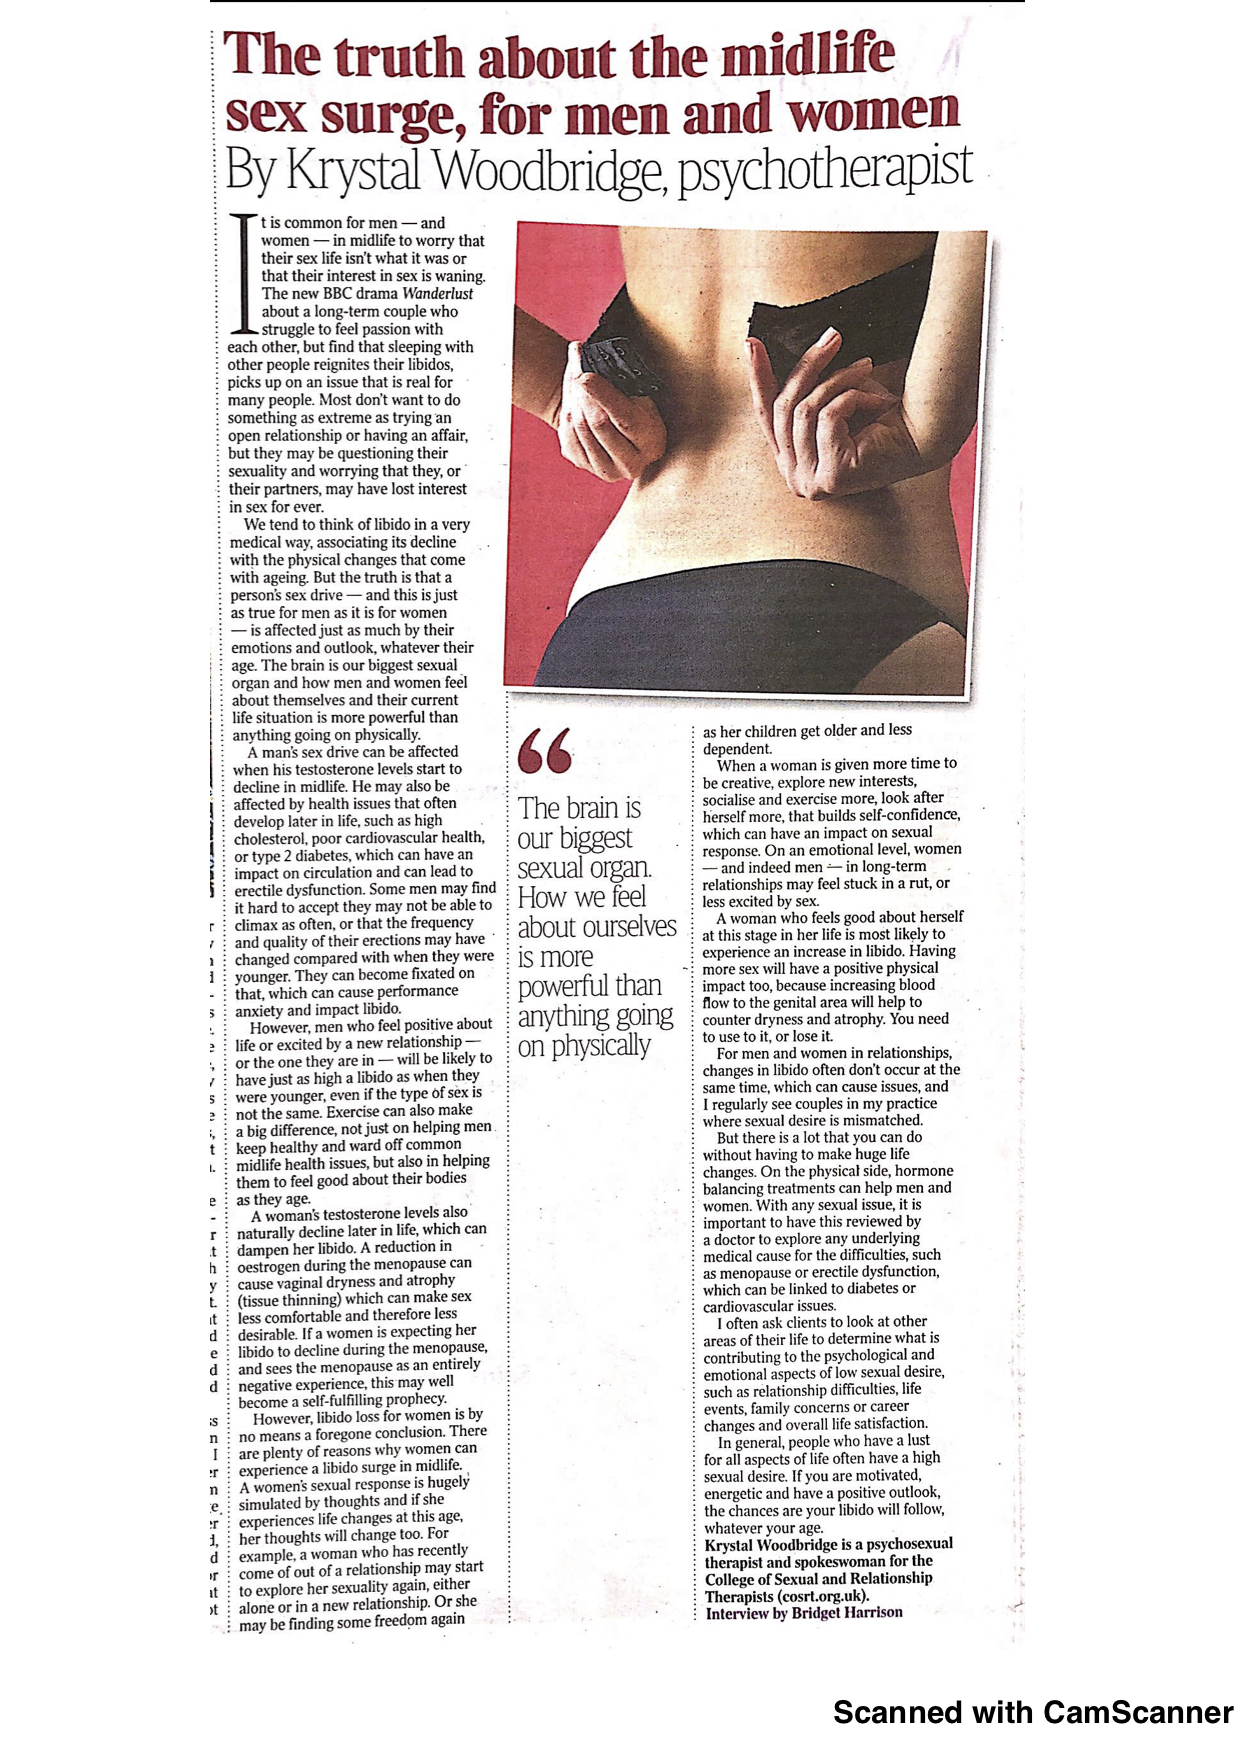 Krystal woodbrisge newspaper article midlife sex surge Woodbridge Therapy Ltd Hertfordshire